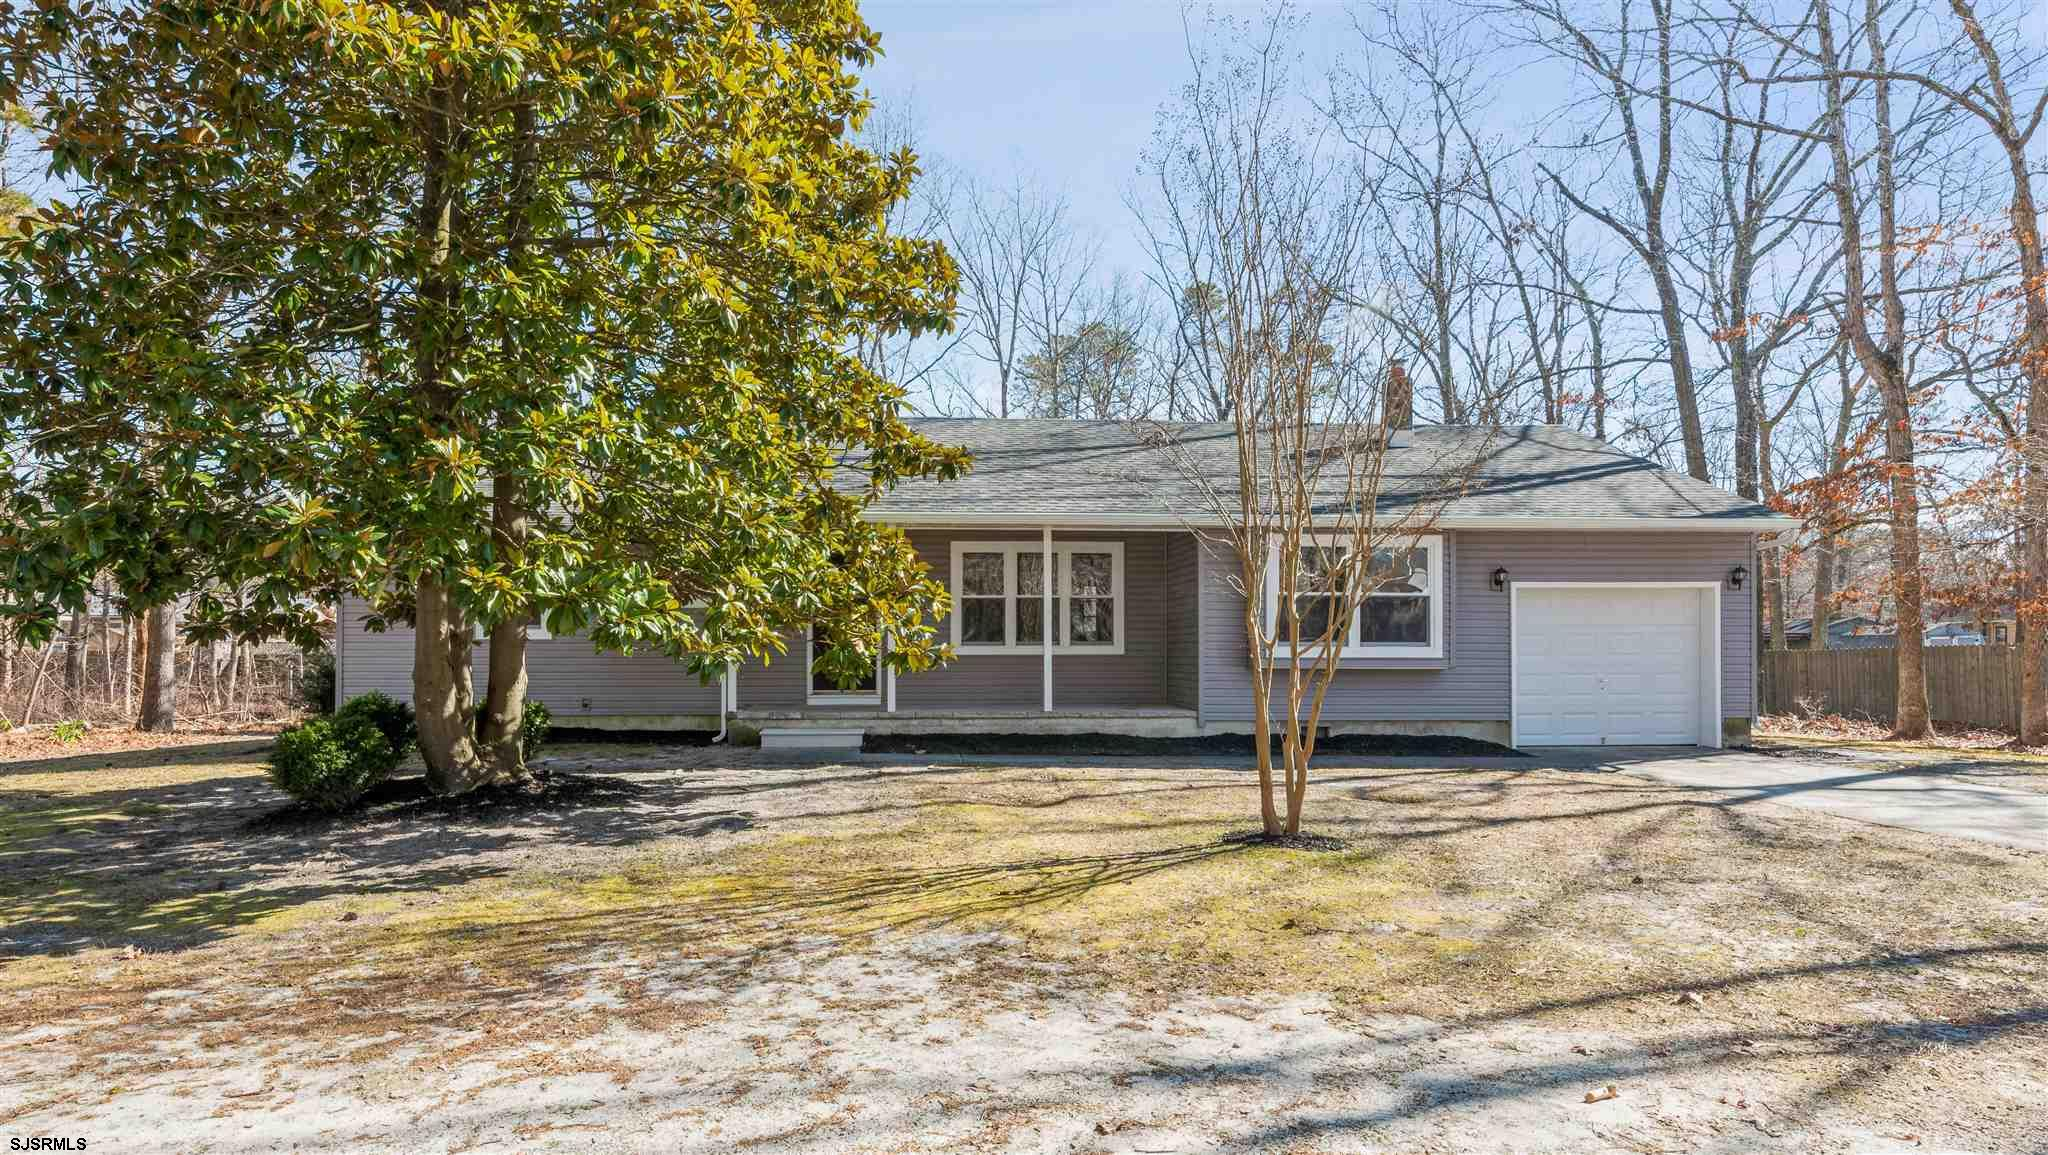 (OPEN HOUSE 2/27/21 11AM-3PM) (OPEN HOUSE 2/28 2:30PM-4:30PM) NEW GALLOWAY LISTING ALERT!! COZY RANC